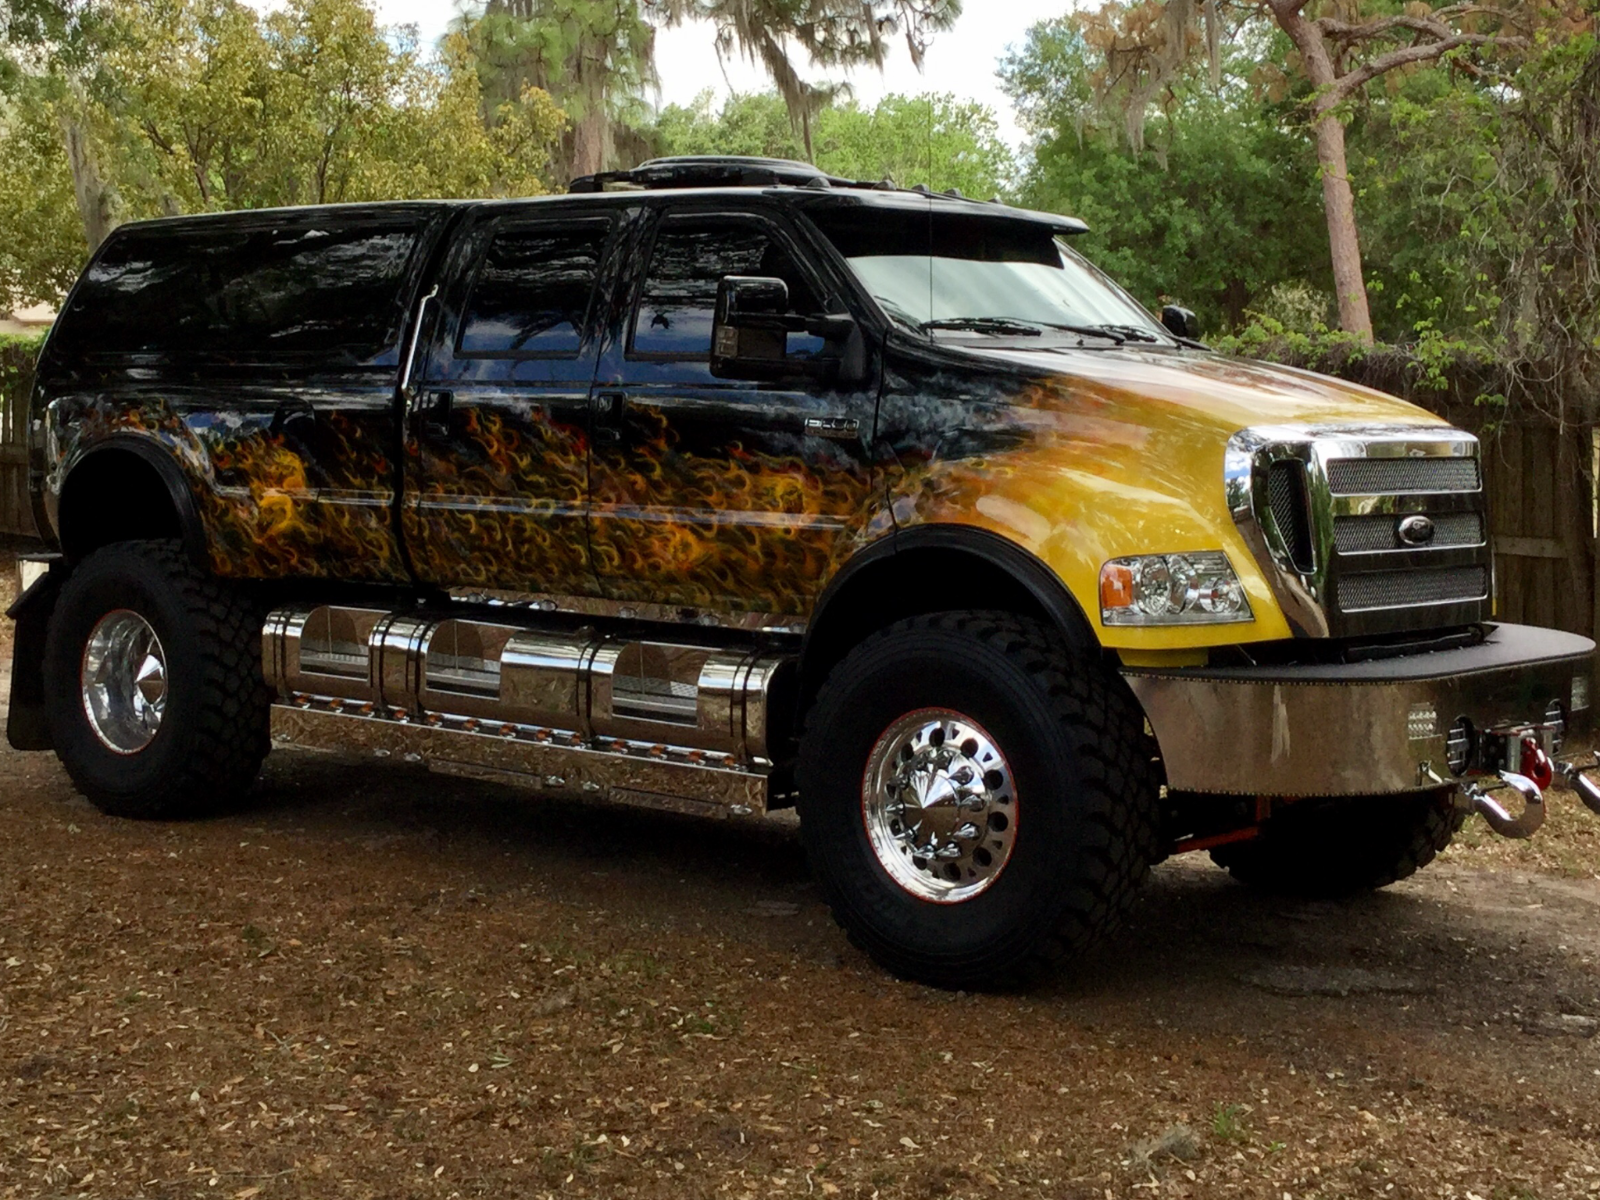 This truck was built by f650 supertrucks out of augustageorgia the truck since its conception